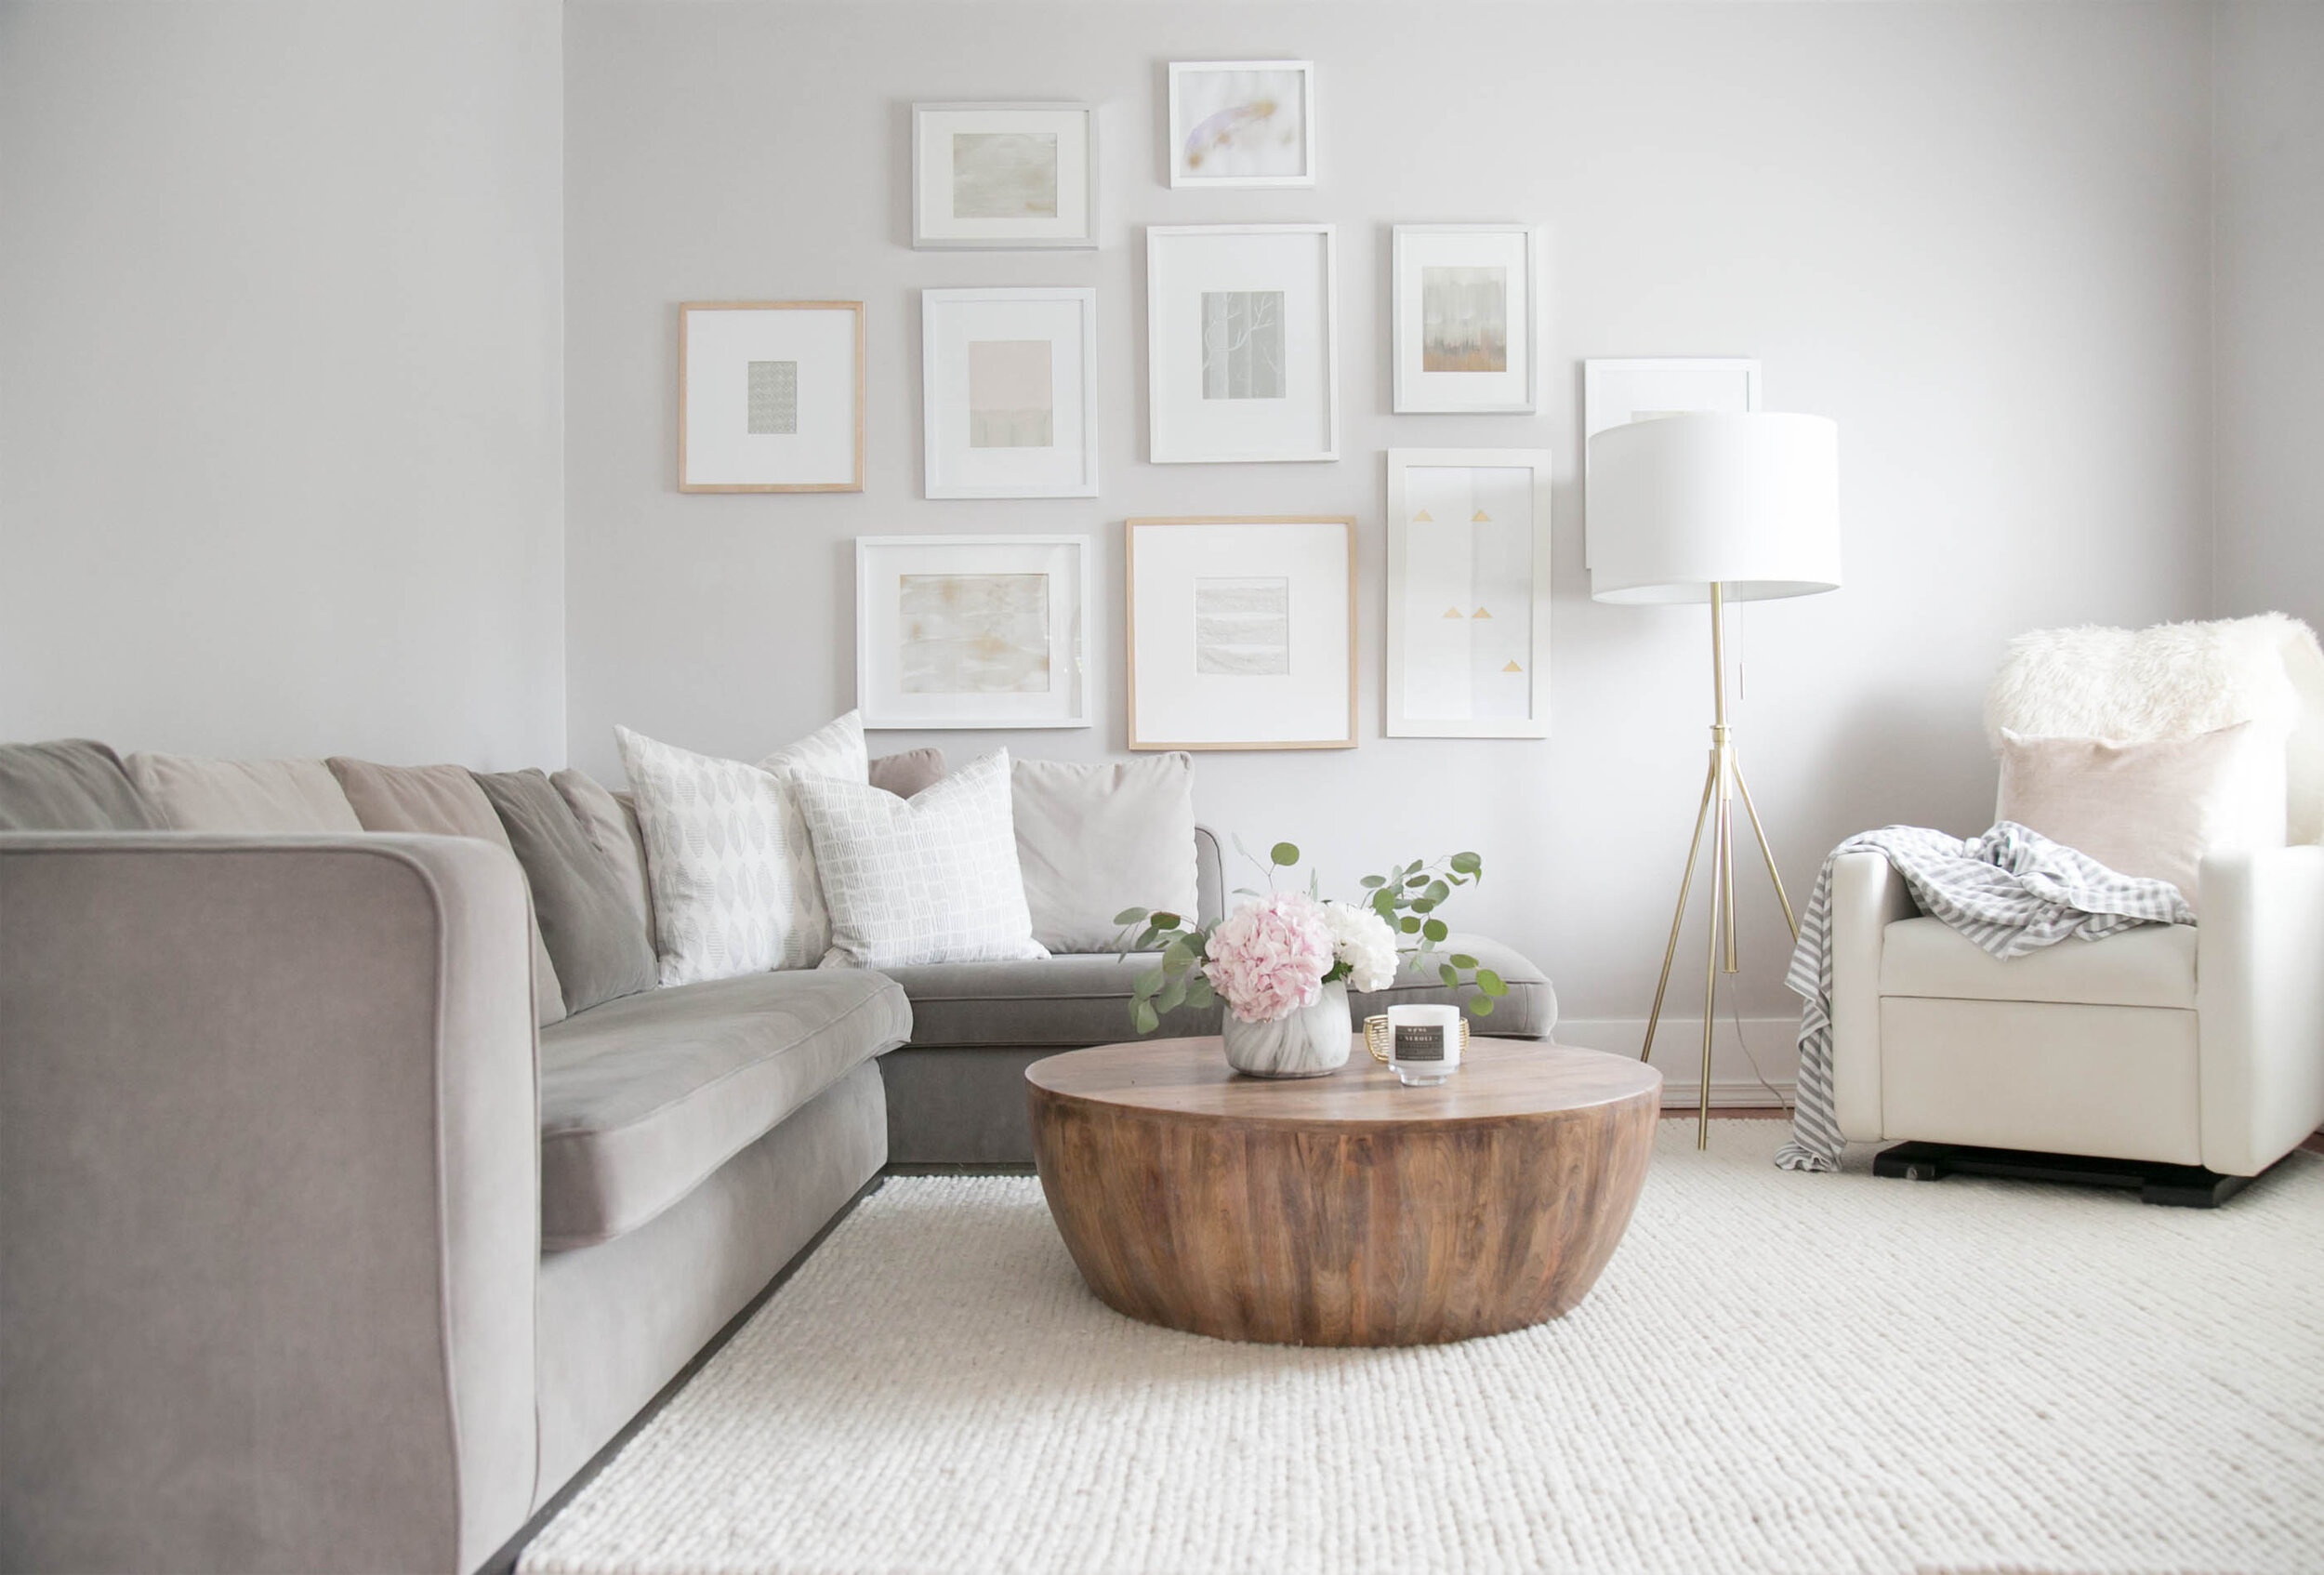 round wood coffee table in neutral living room